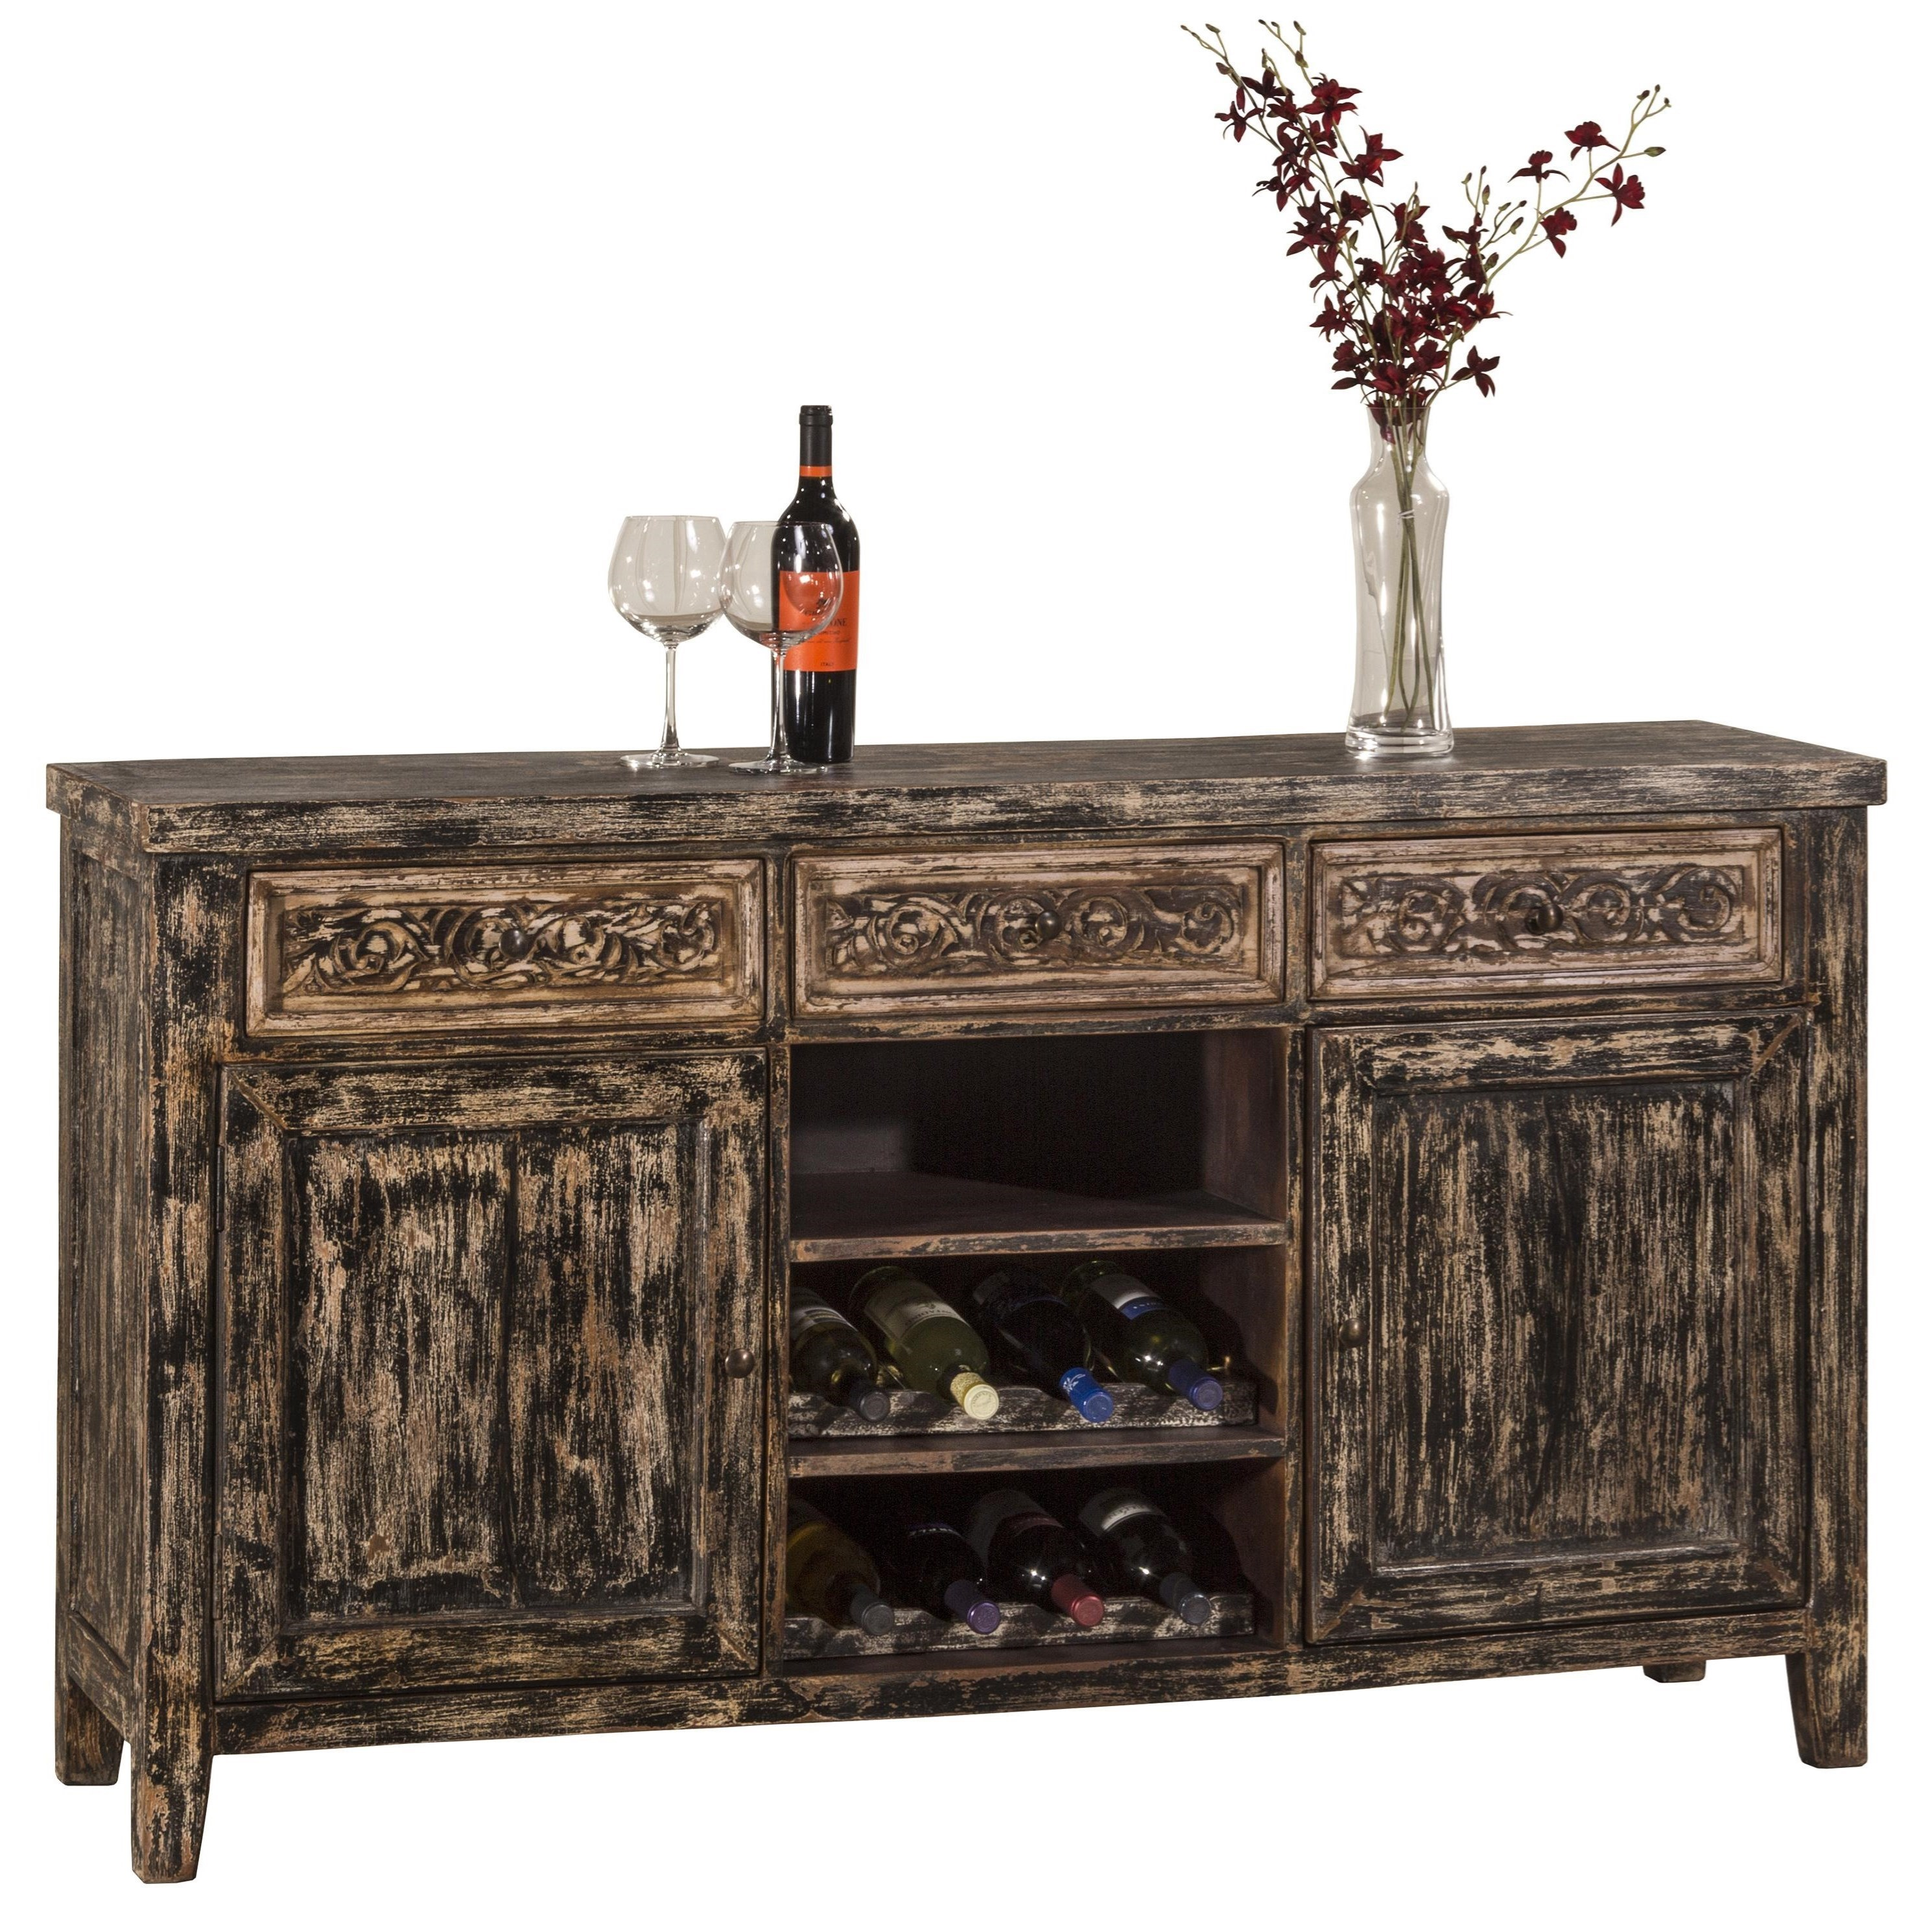 Sofa Table with Two Door Storage and Wine Rack by Hillsdale